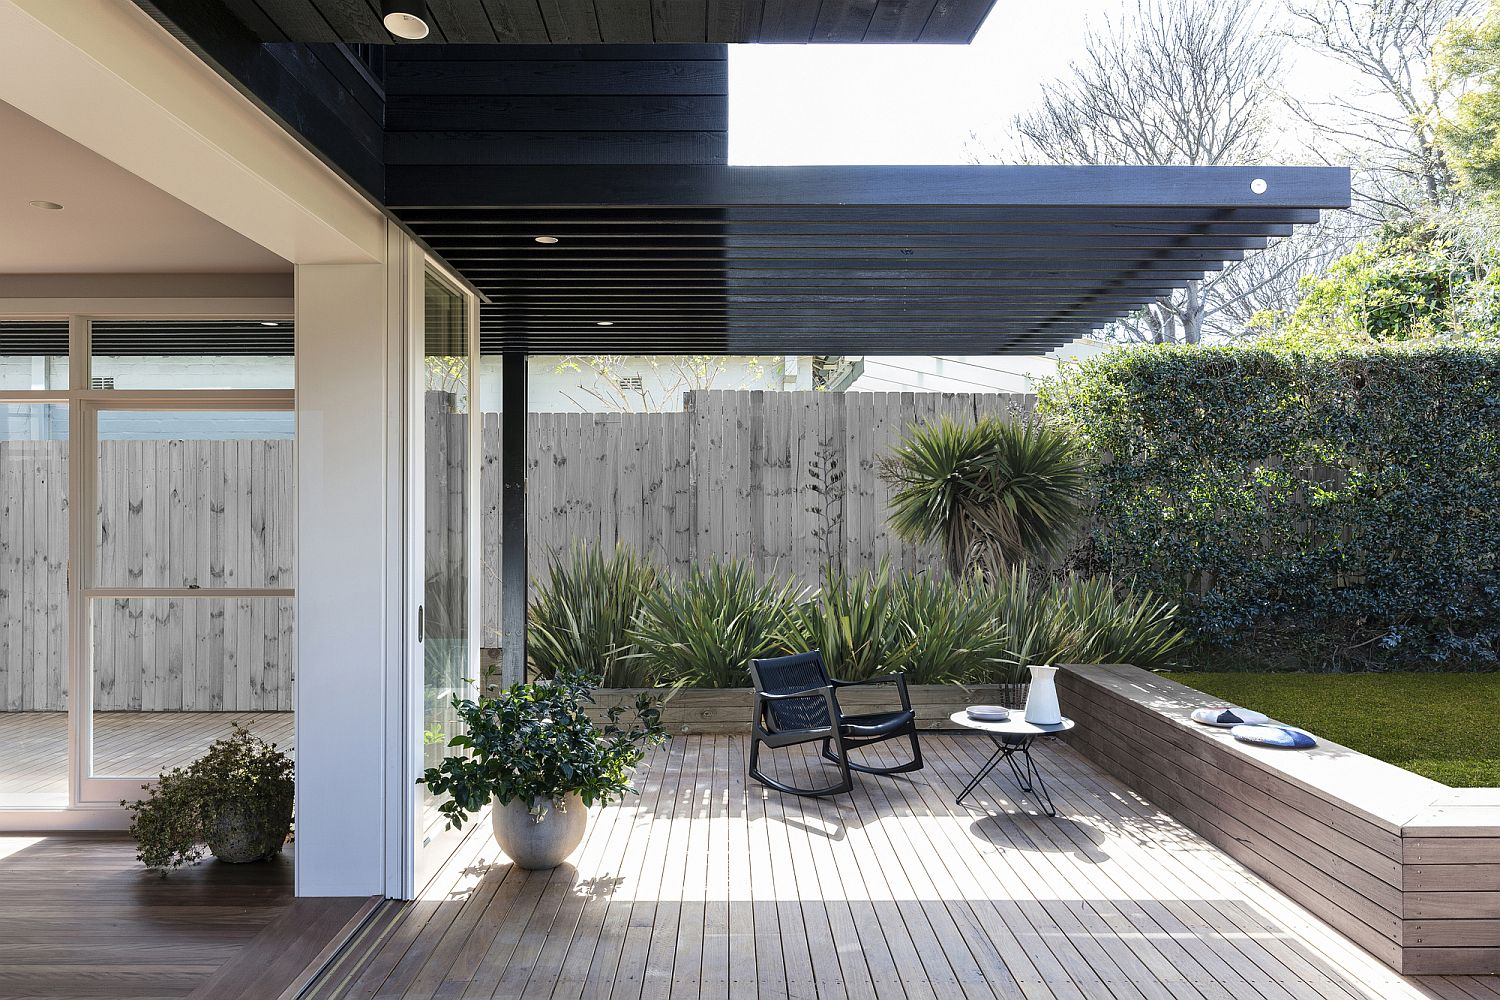 Upper-level-extension-offers-natural-shade-to-those-on-the-deck-below